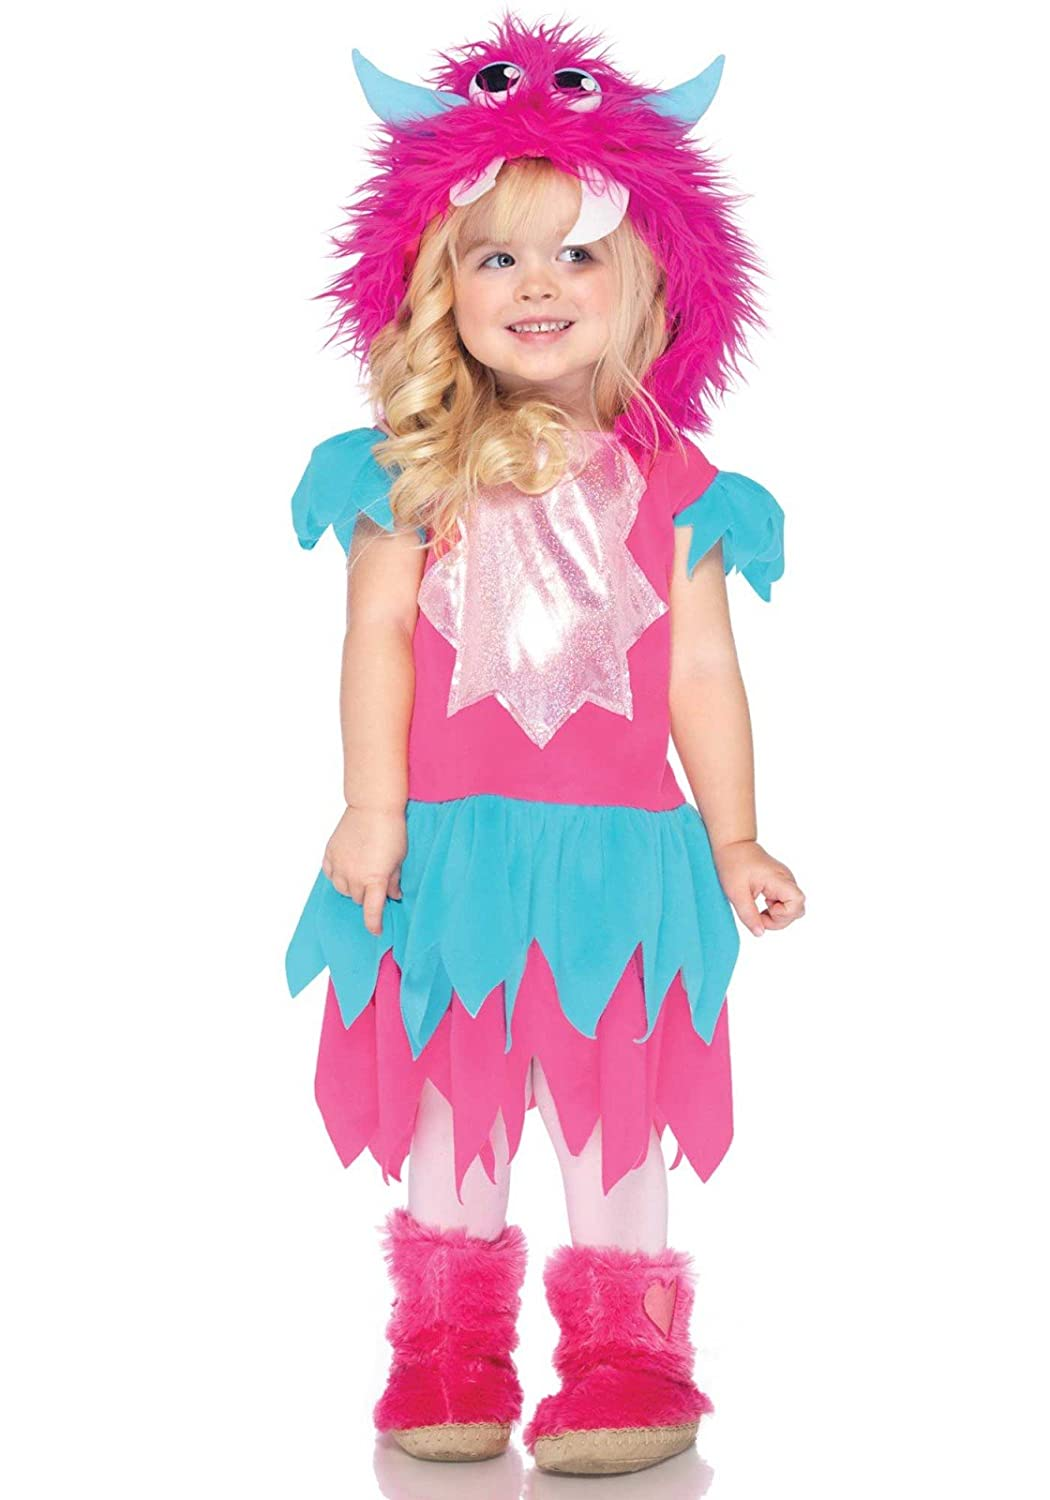 amazoncom sweetheart monster child costume toys games - Halloween Costume Monster